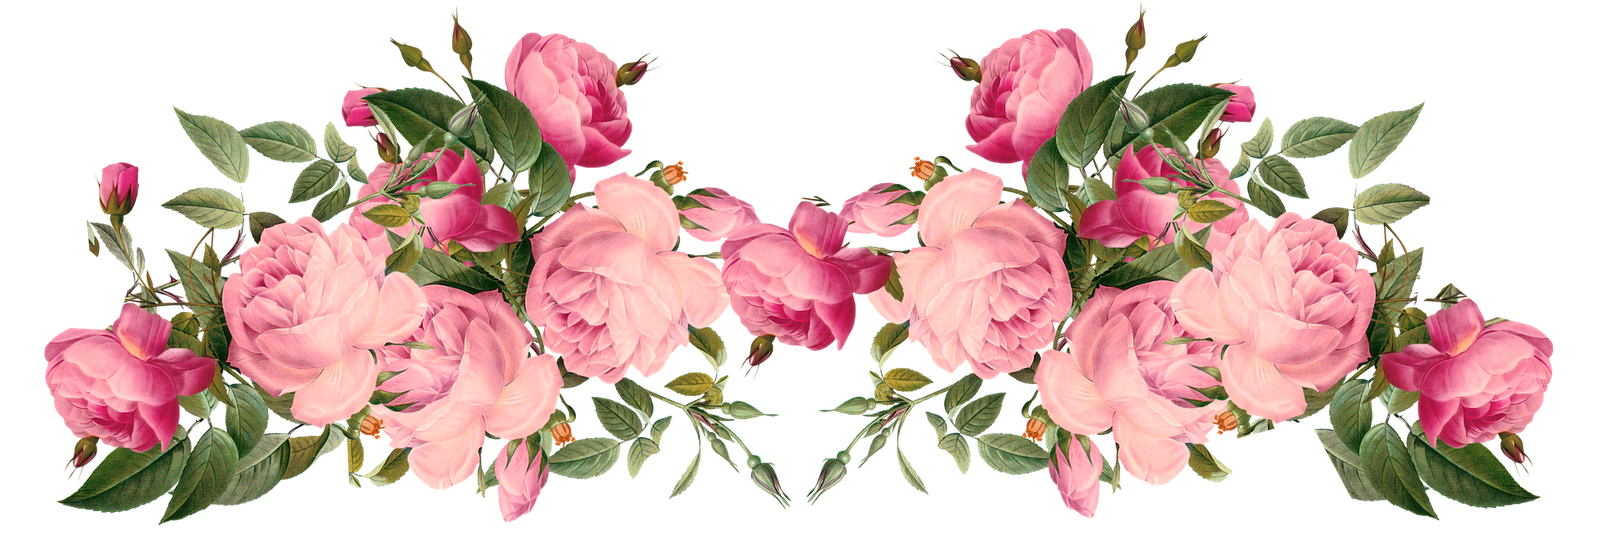 Free Faux Vintage Roses Frame And Borders Png Rosenrahmen Png Freebie Meinlilapark Diy Printables And Download Vintage Flowers Vintage Roses Rose Frame